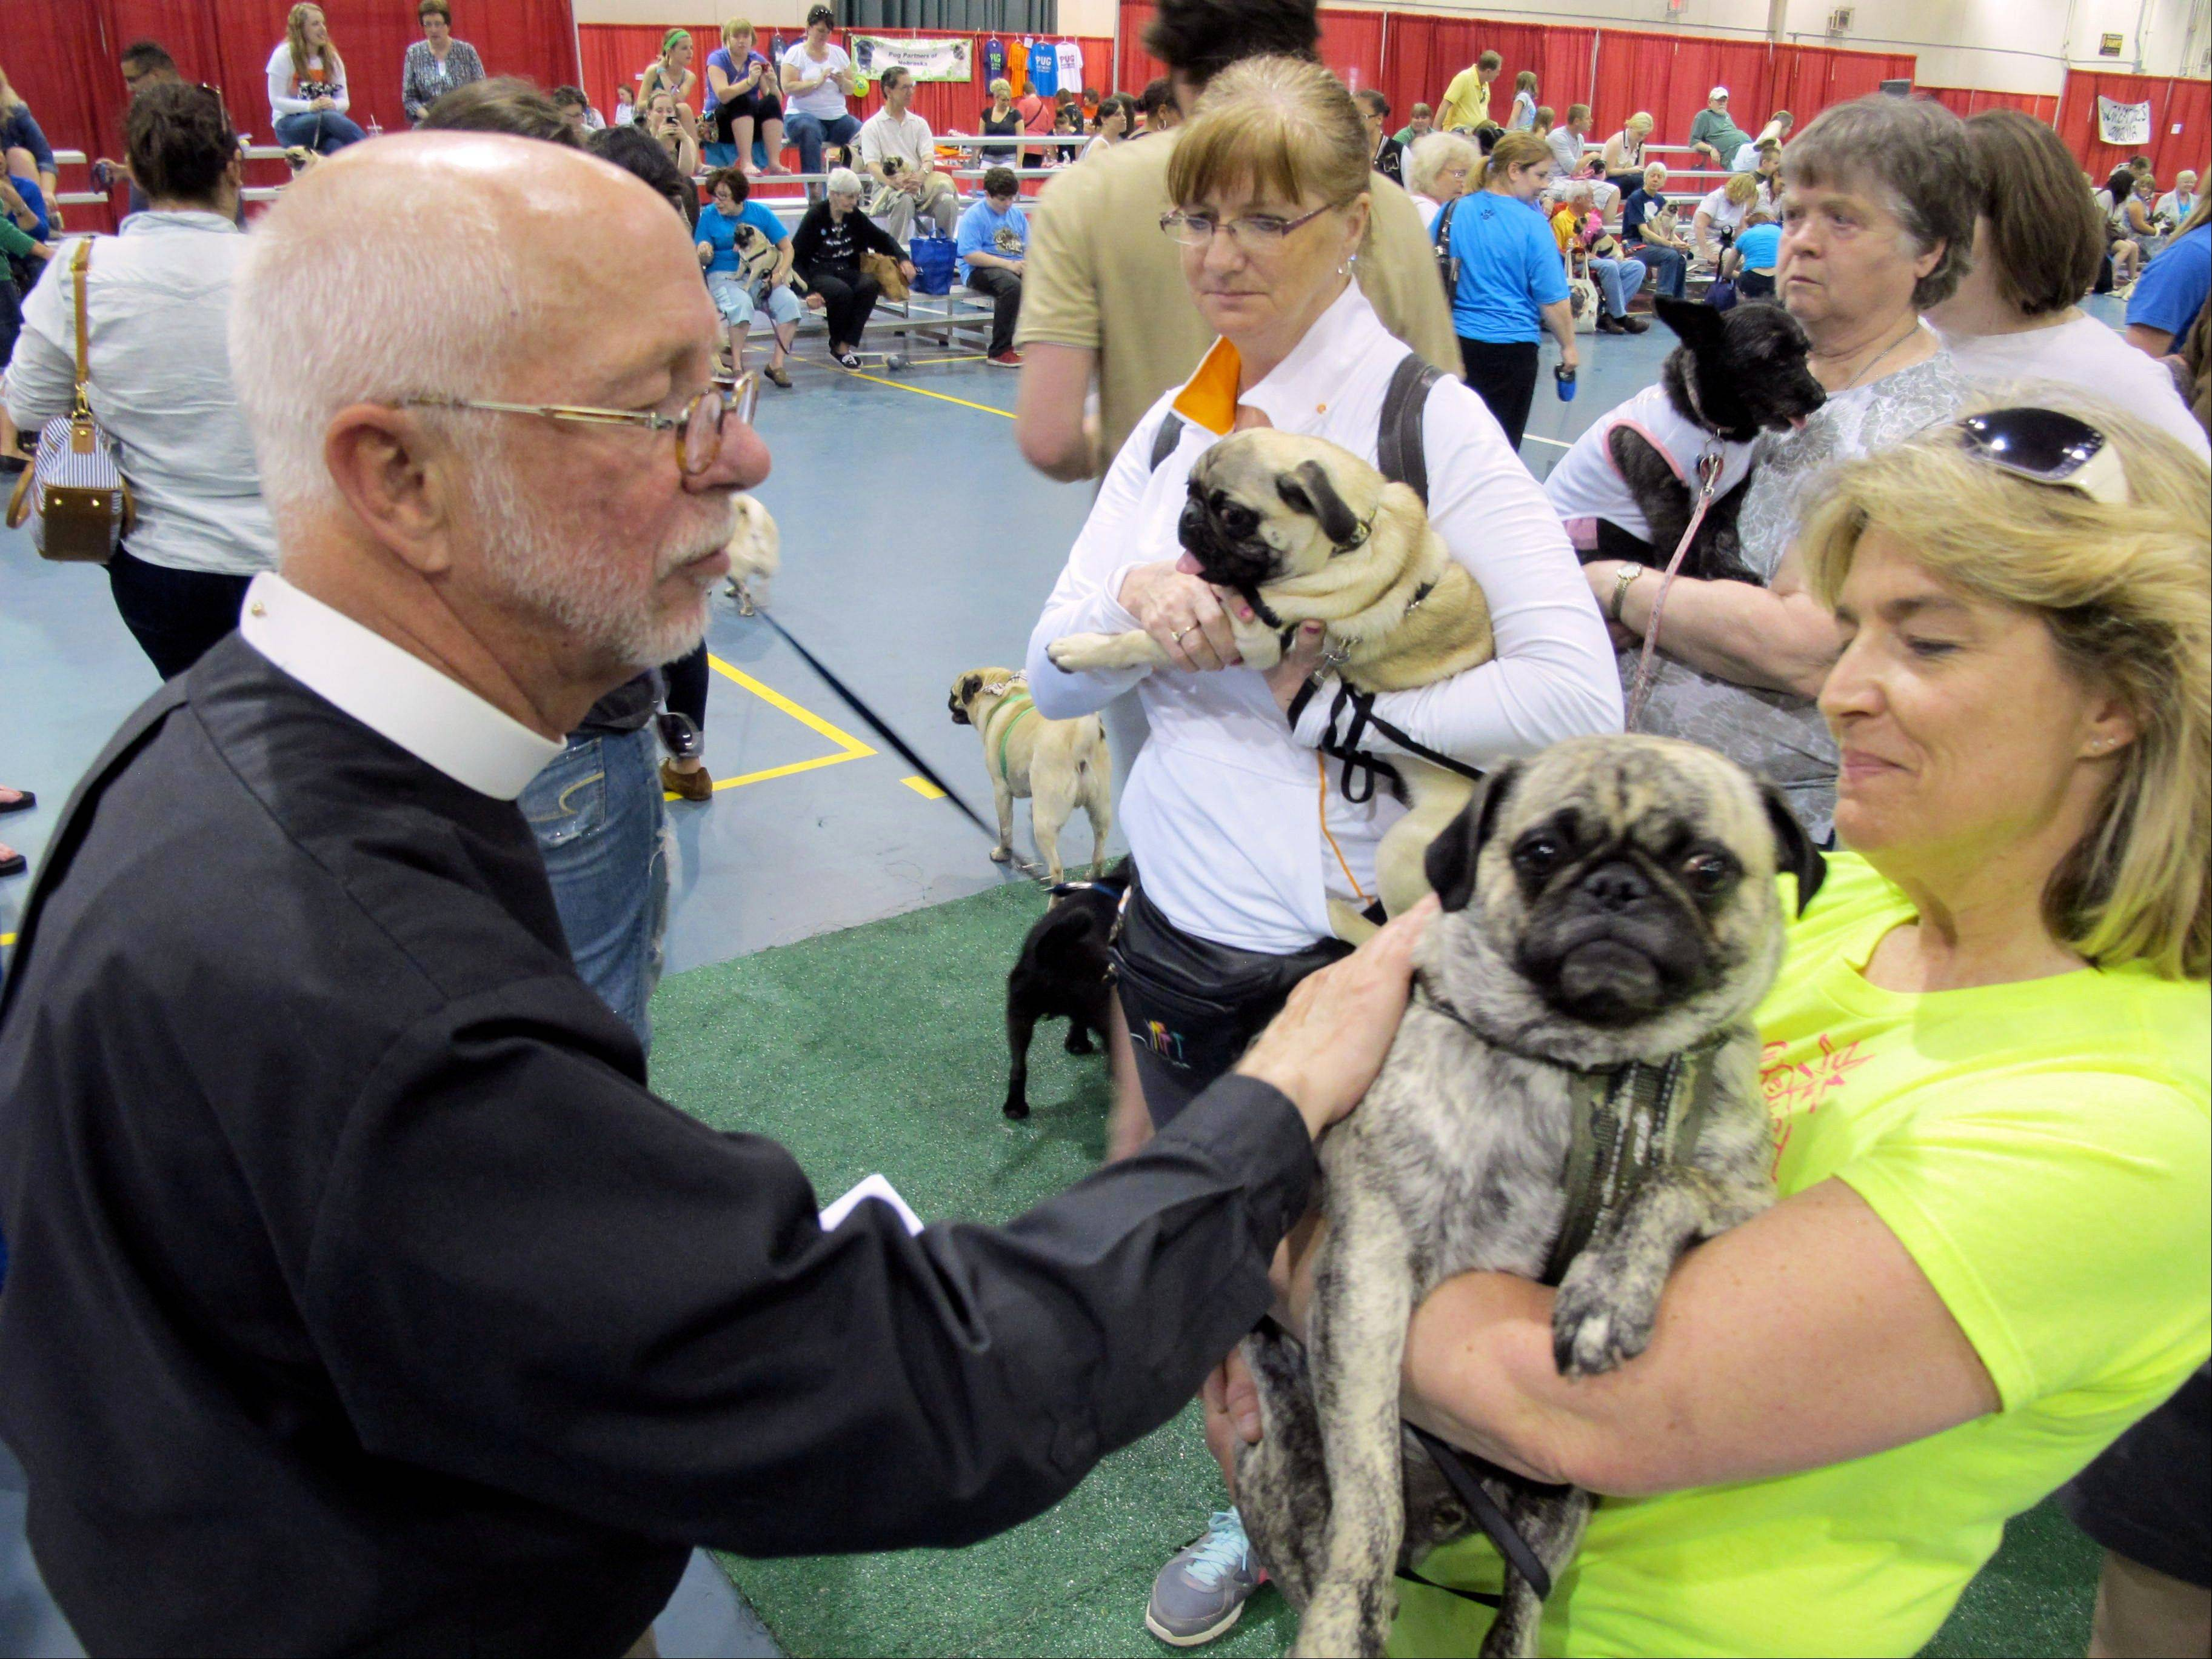 The Rev. John Allen blesses Chip, who is being held by Lisa Erdmann, at Milwaukee Pug Fest in Franklin, Wis.